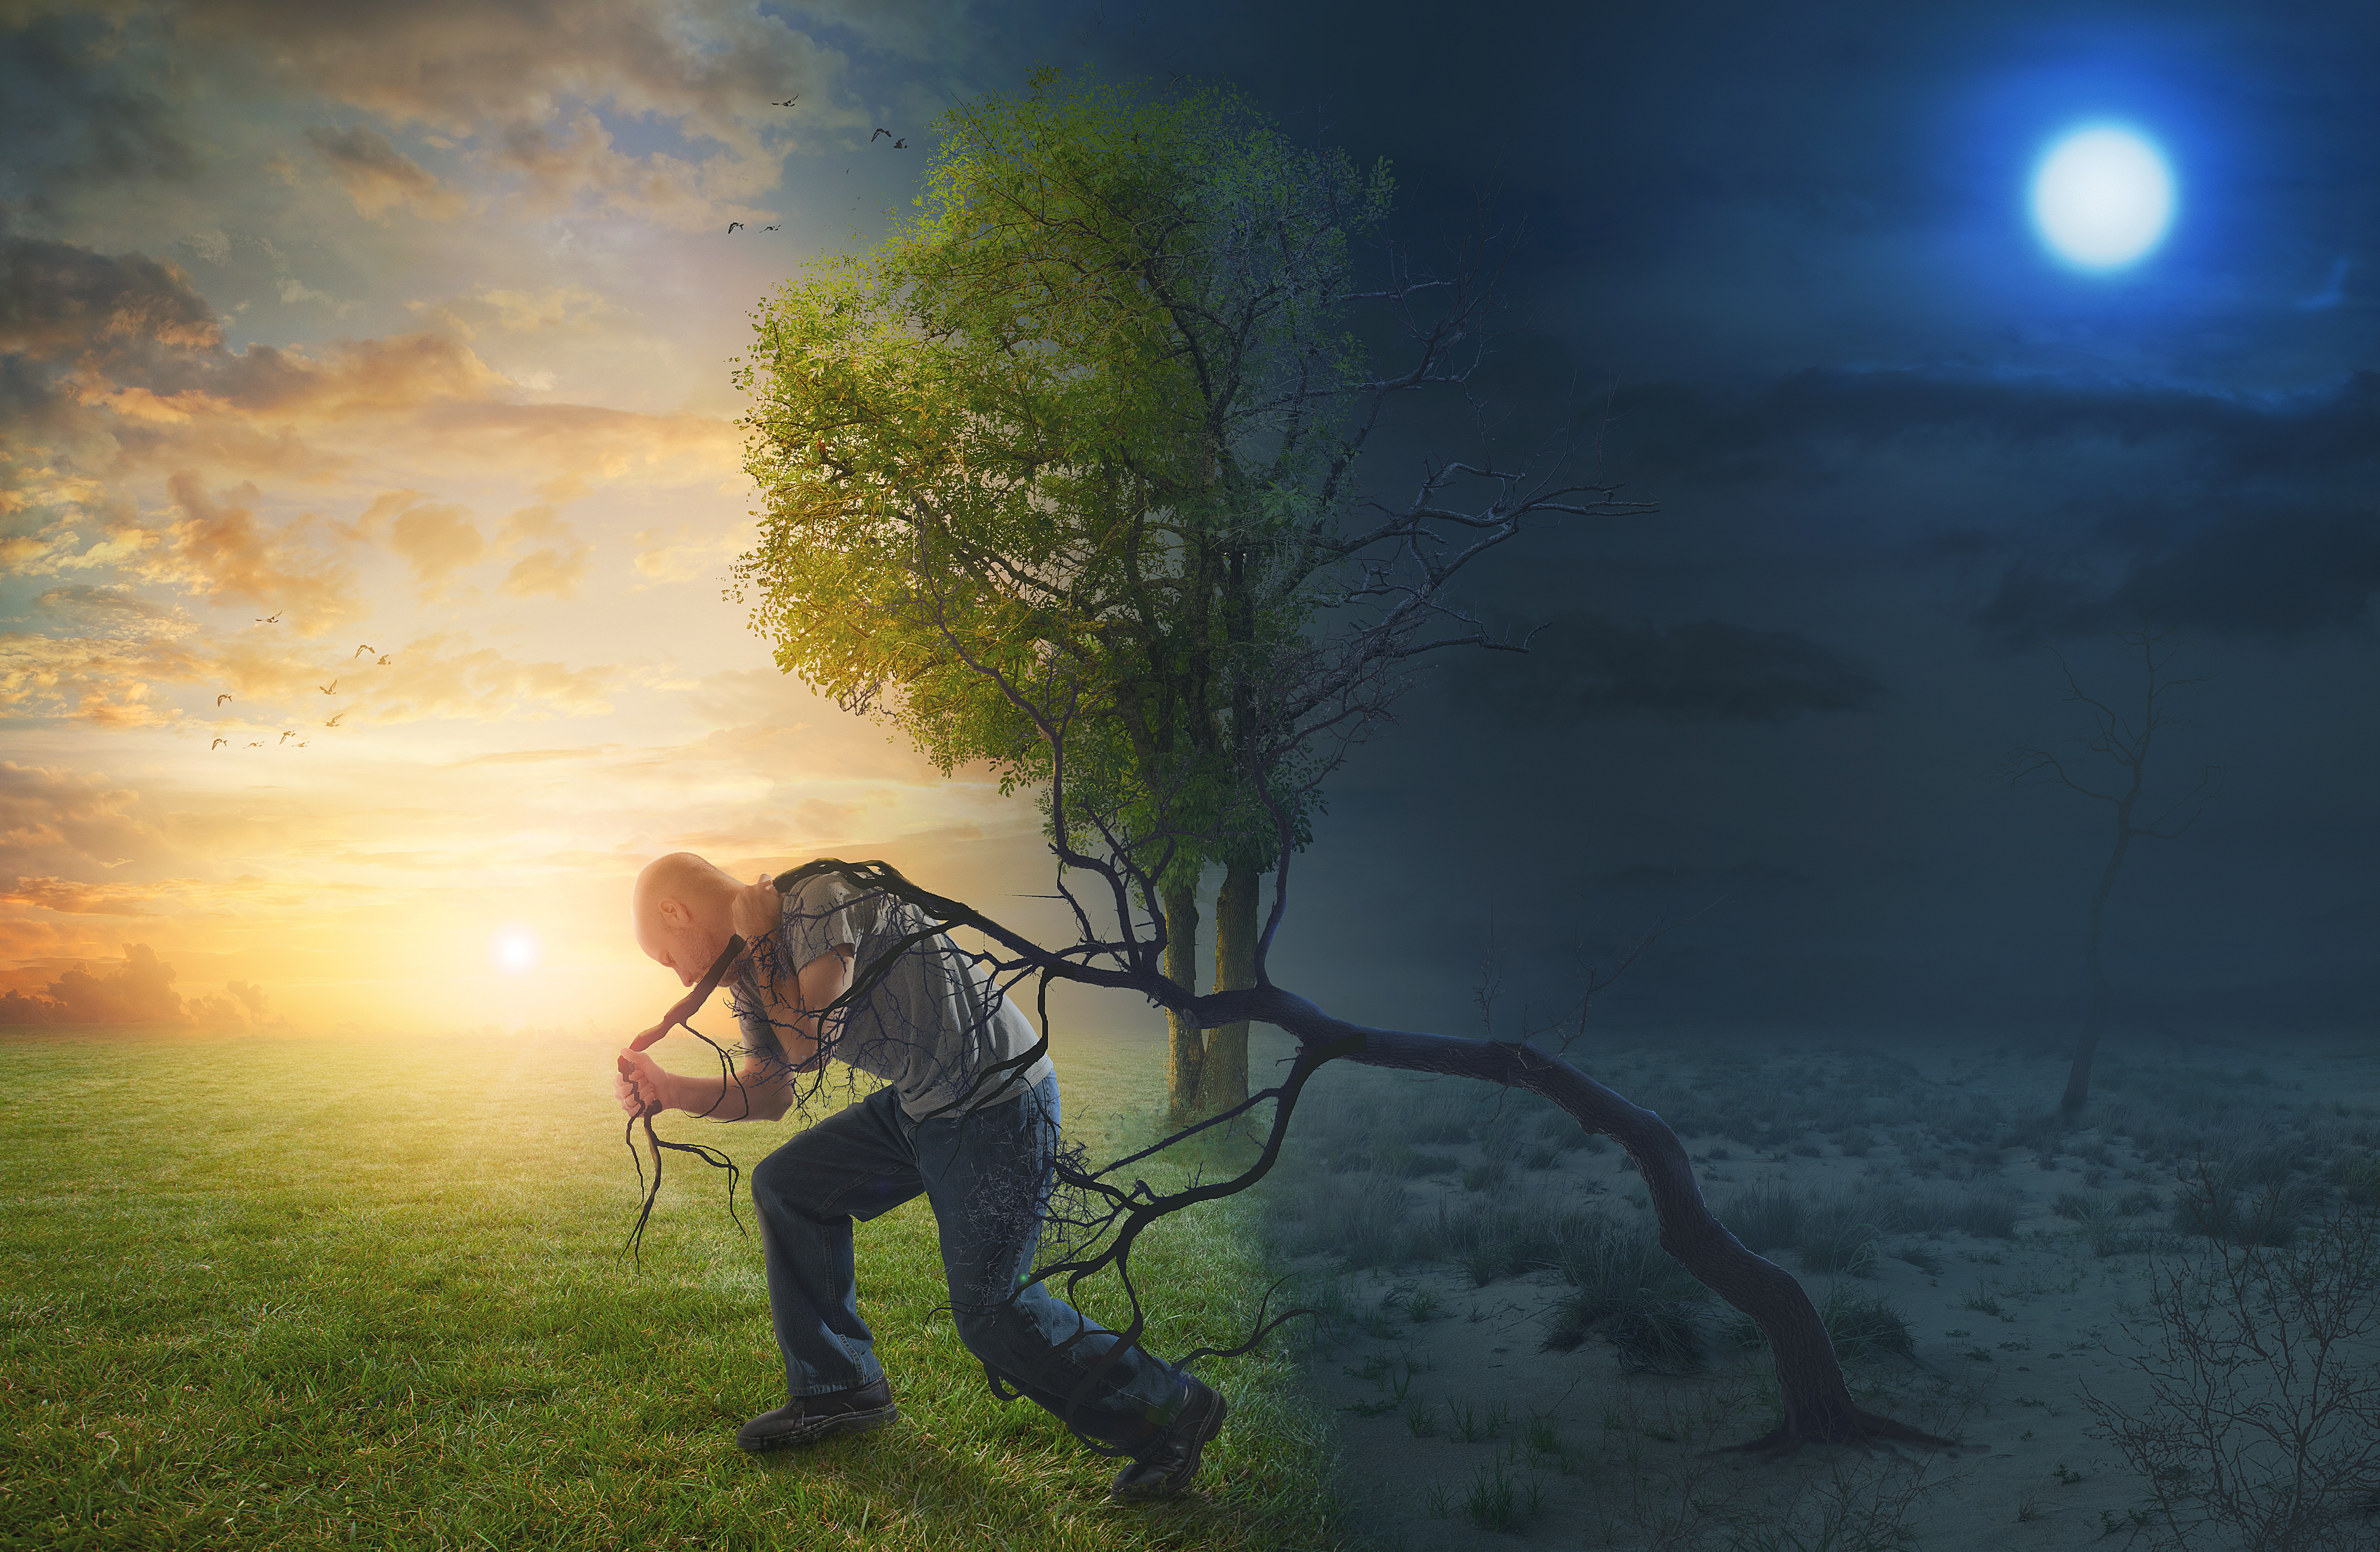 a-man-walks-into-the-light-and-pulls-an-old-tree-from-the-darkness_HsVf1-9UDl.jpg